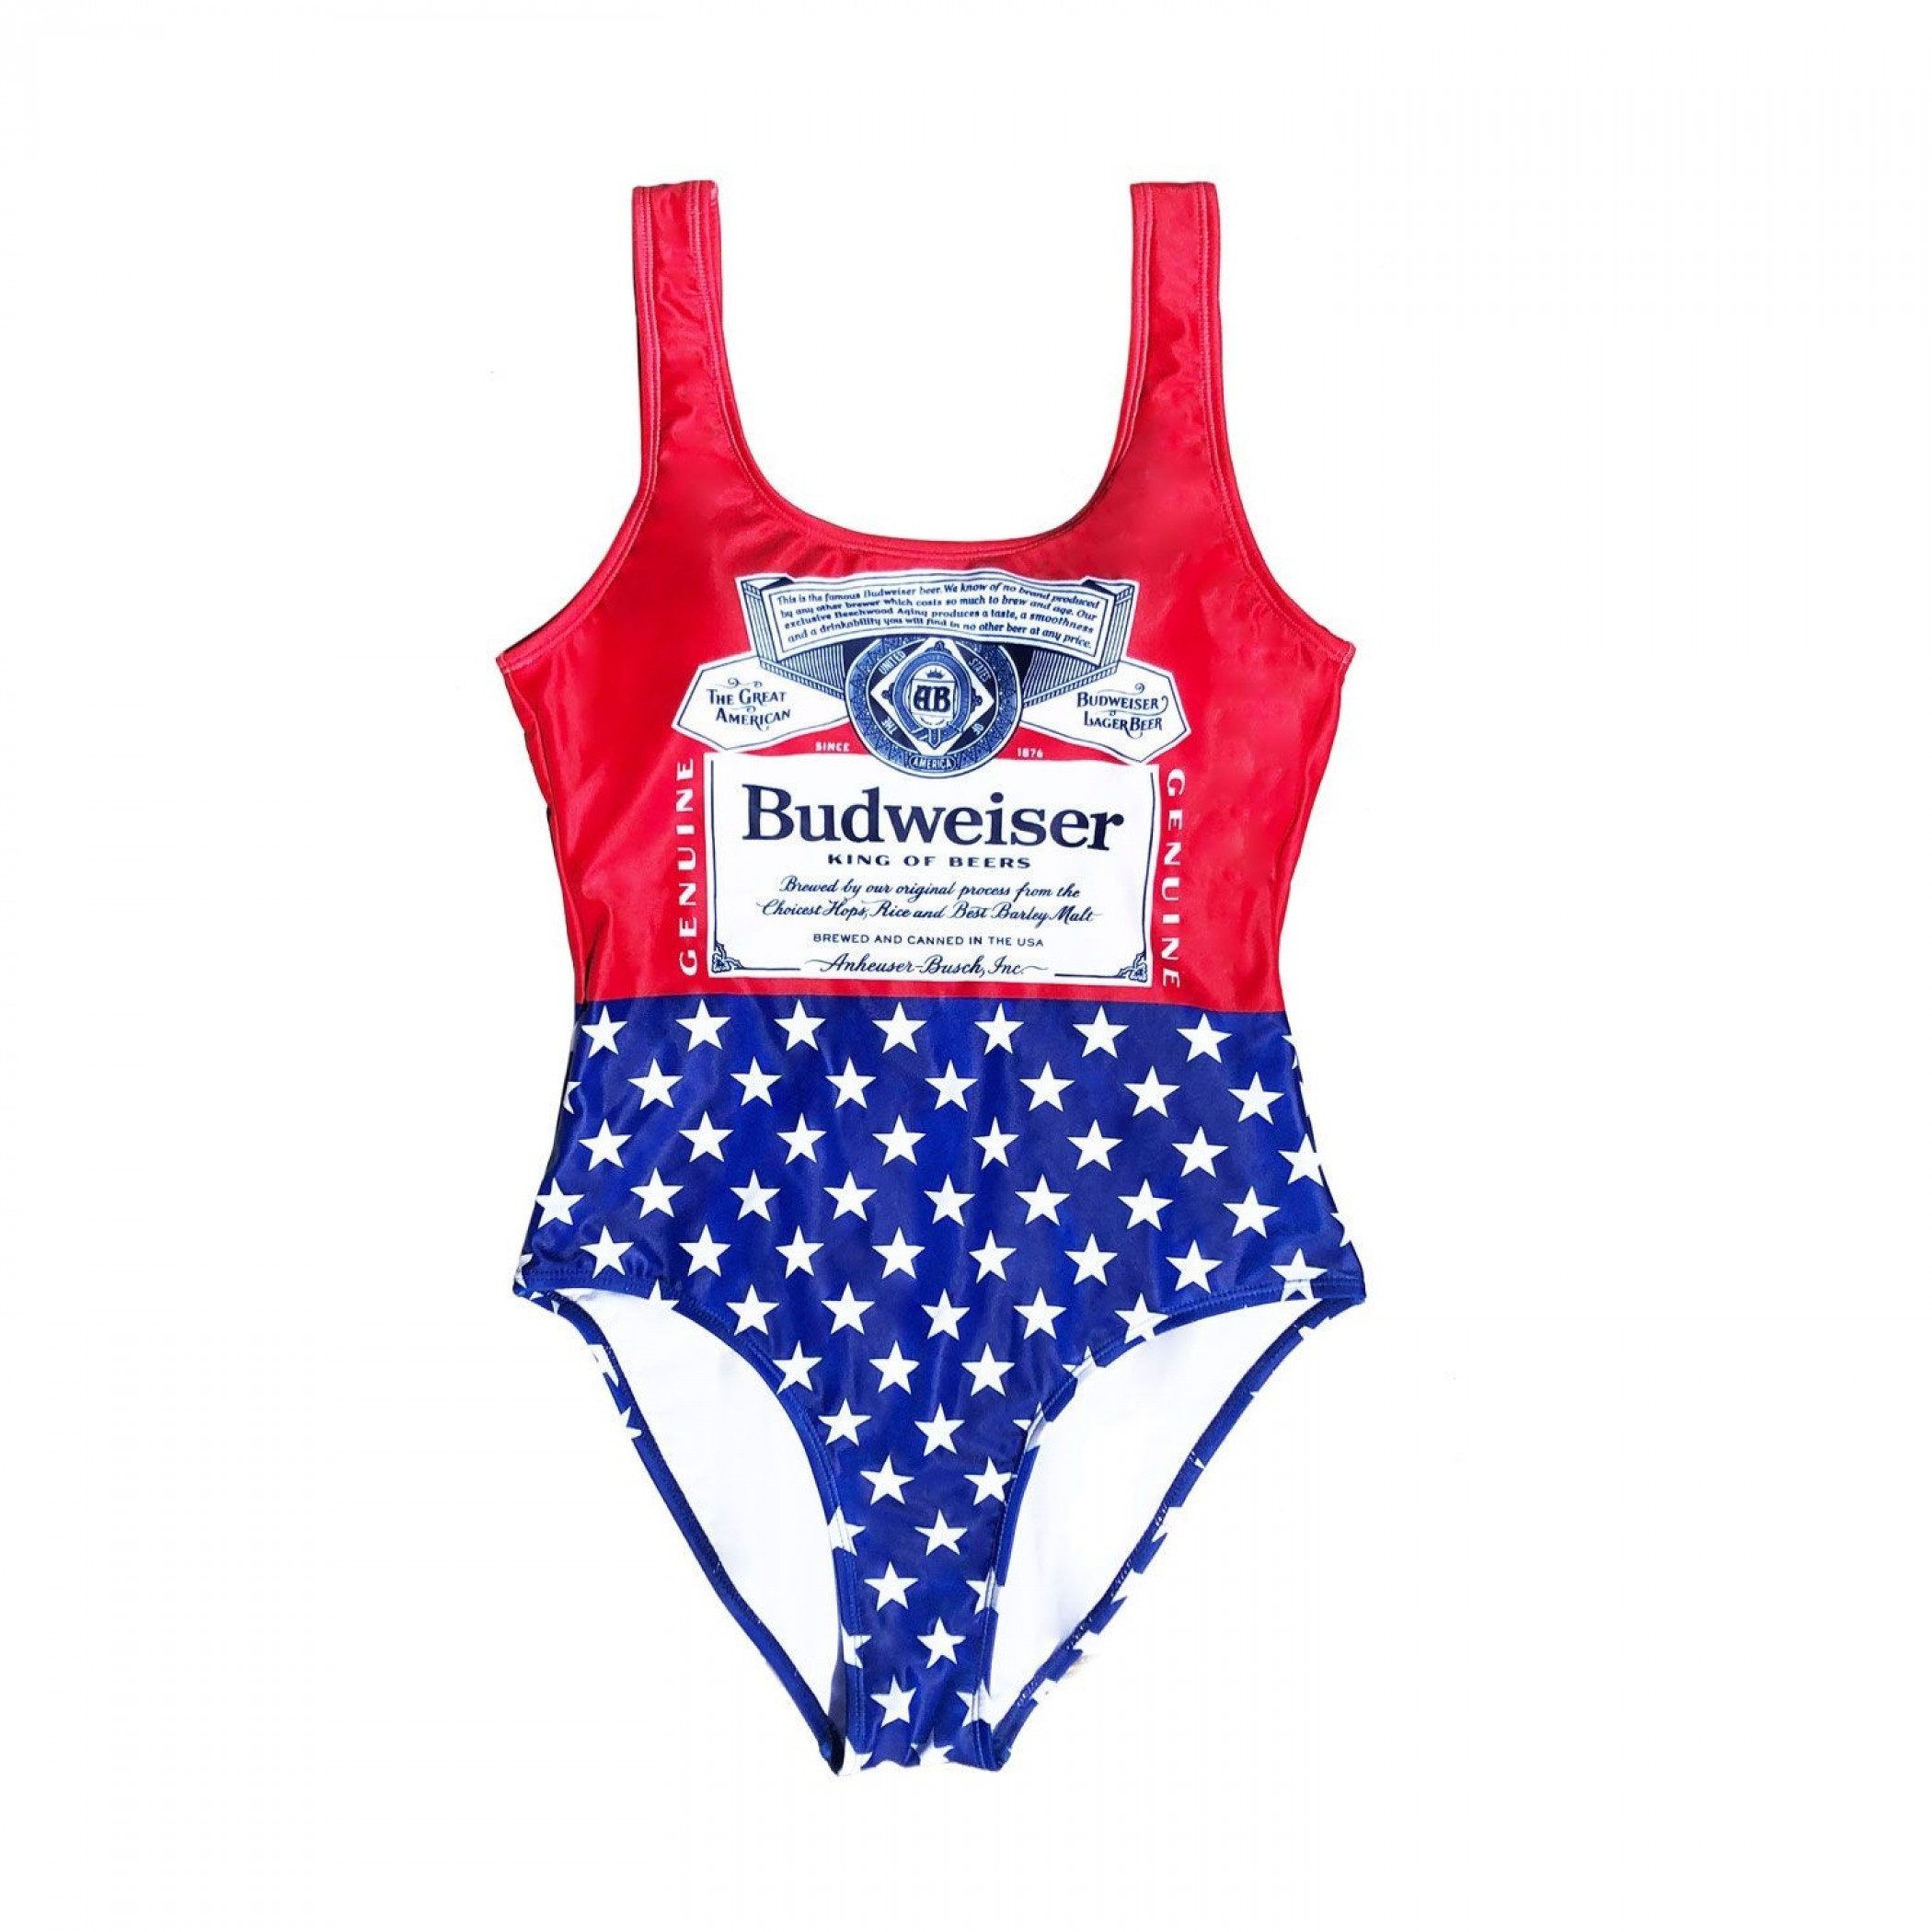 Budweiser Bottle Label and Stars Women's One-Piece Swimsuit